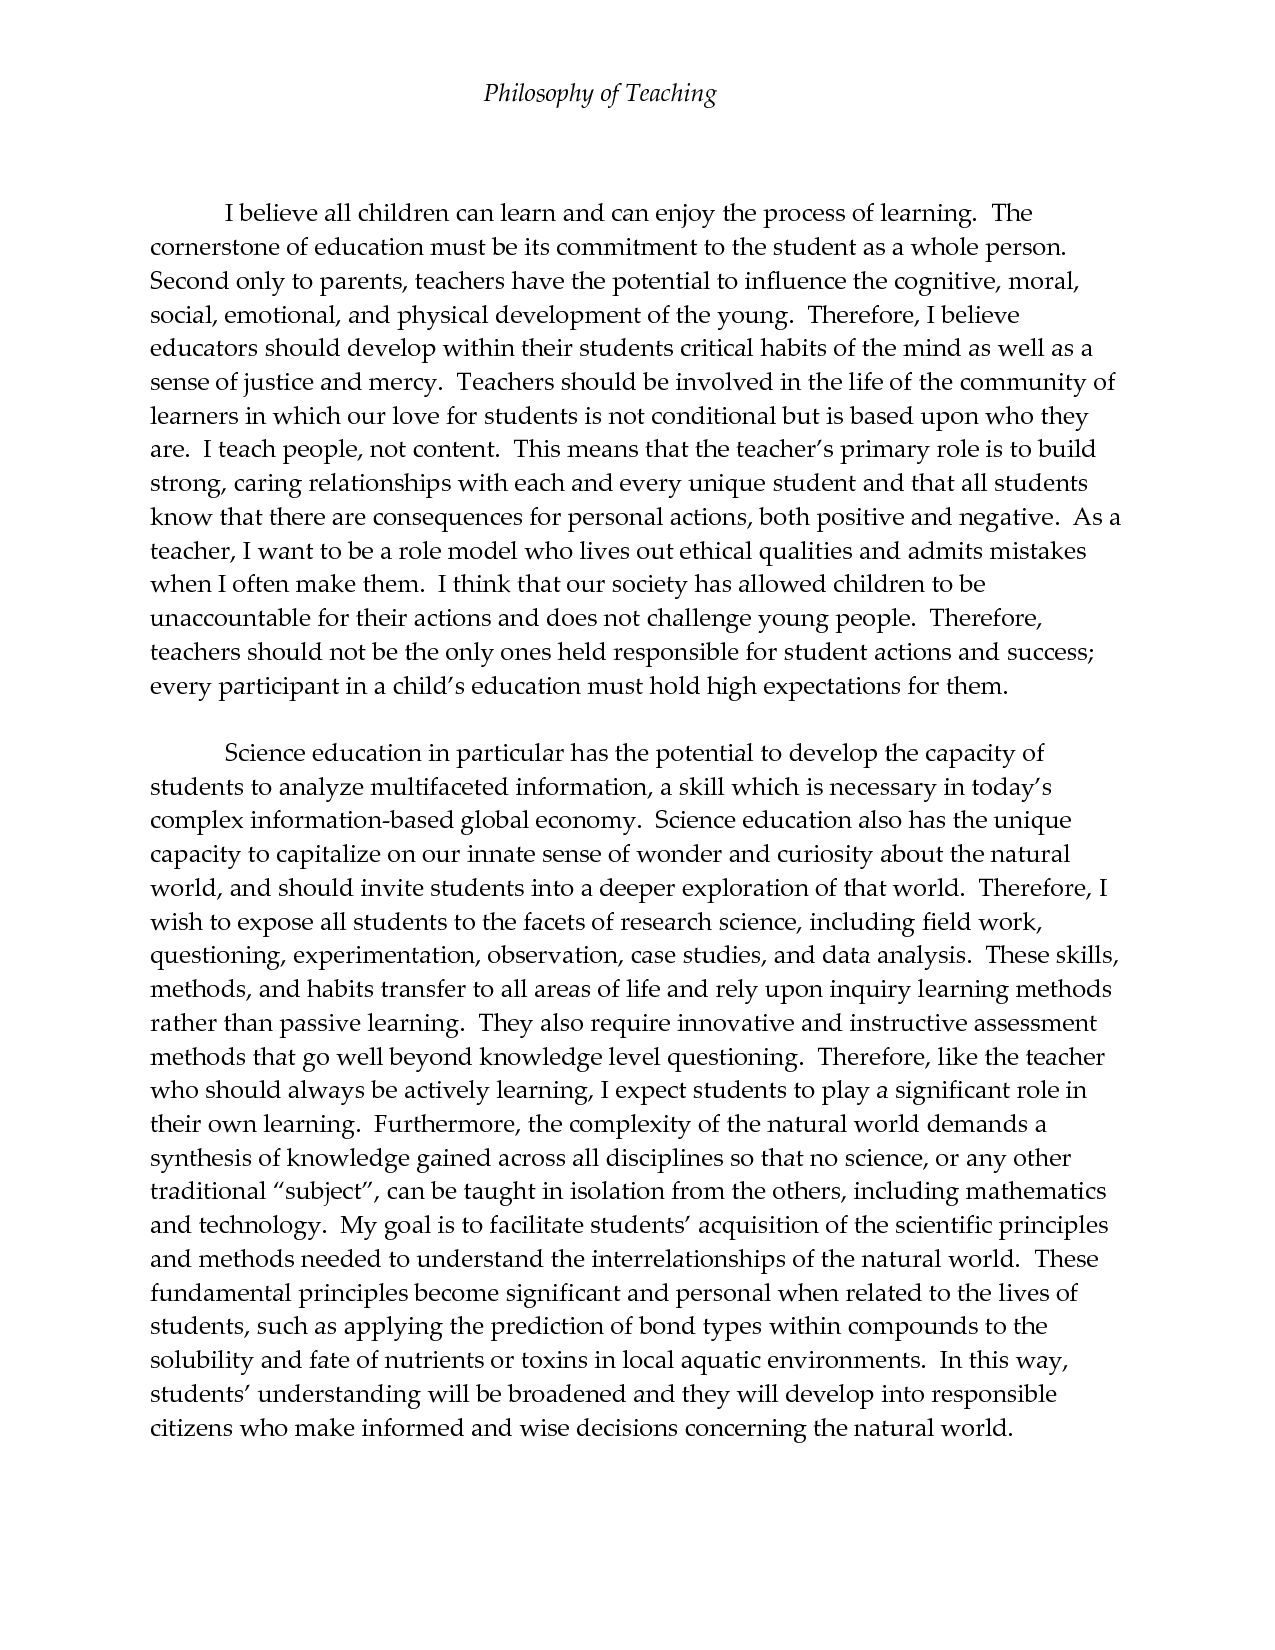 Educational philosophy paper